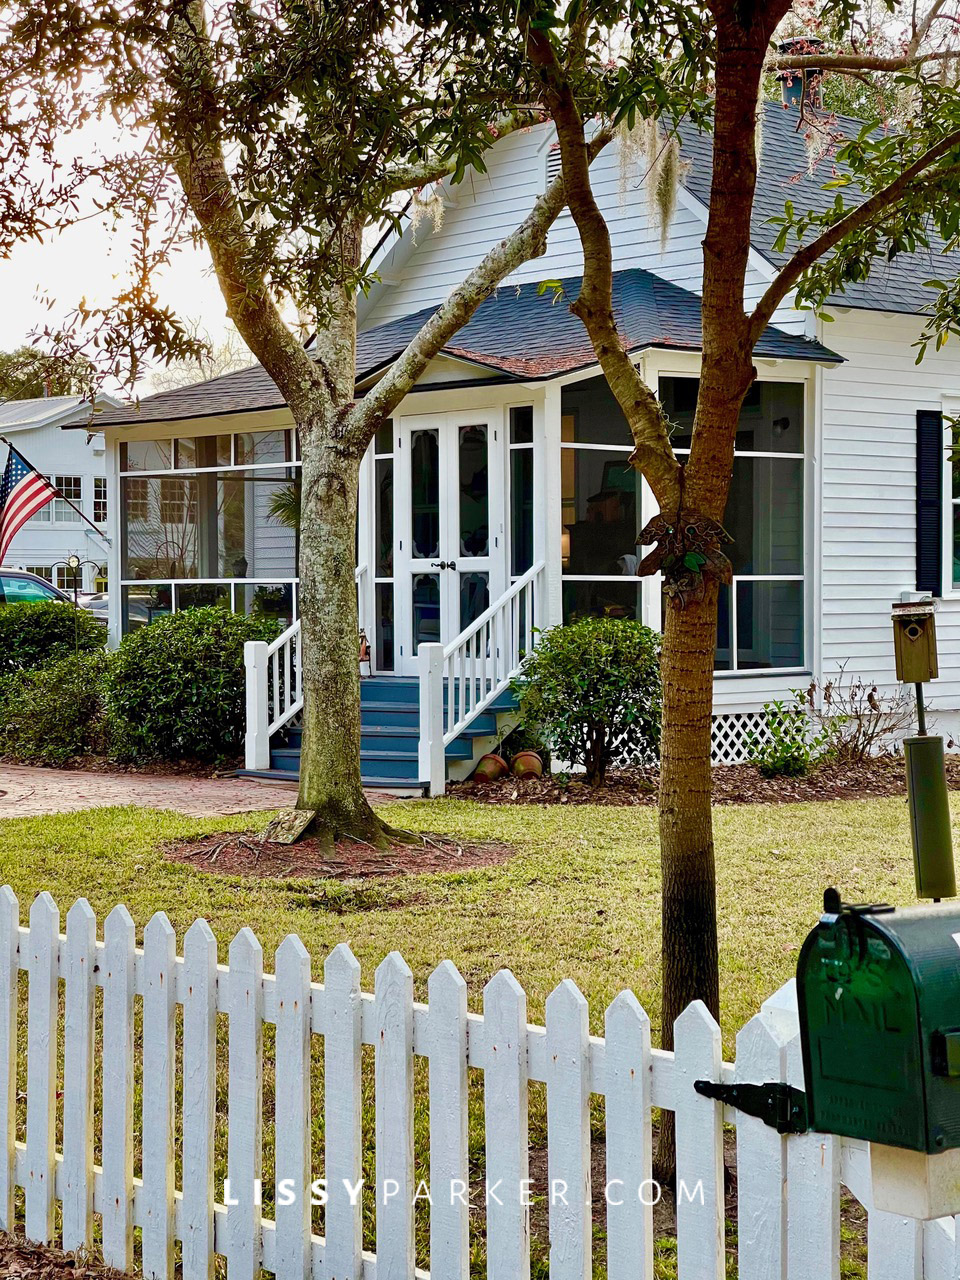 Isle of Hope house crush